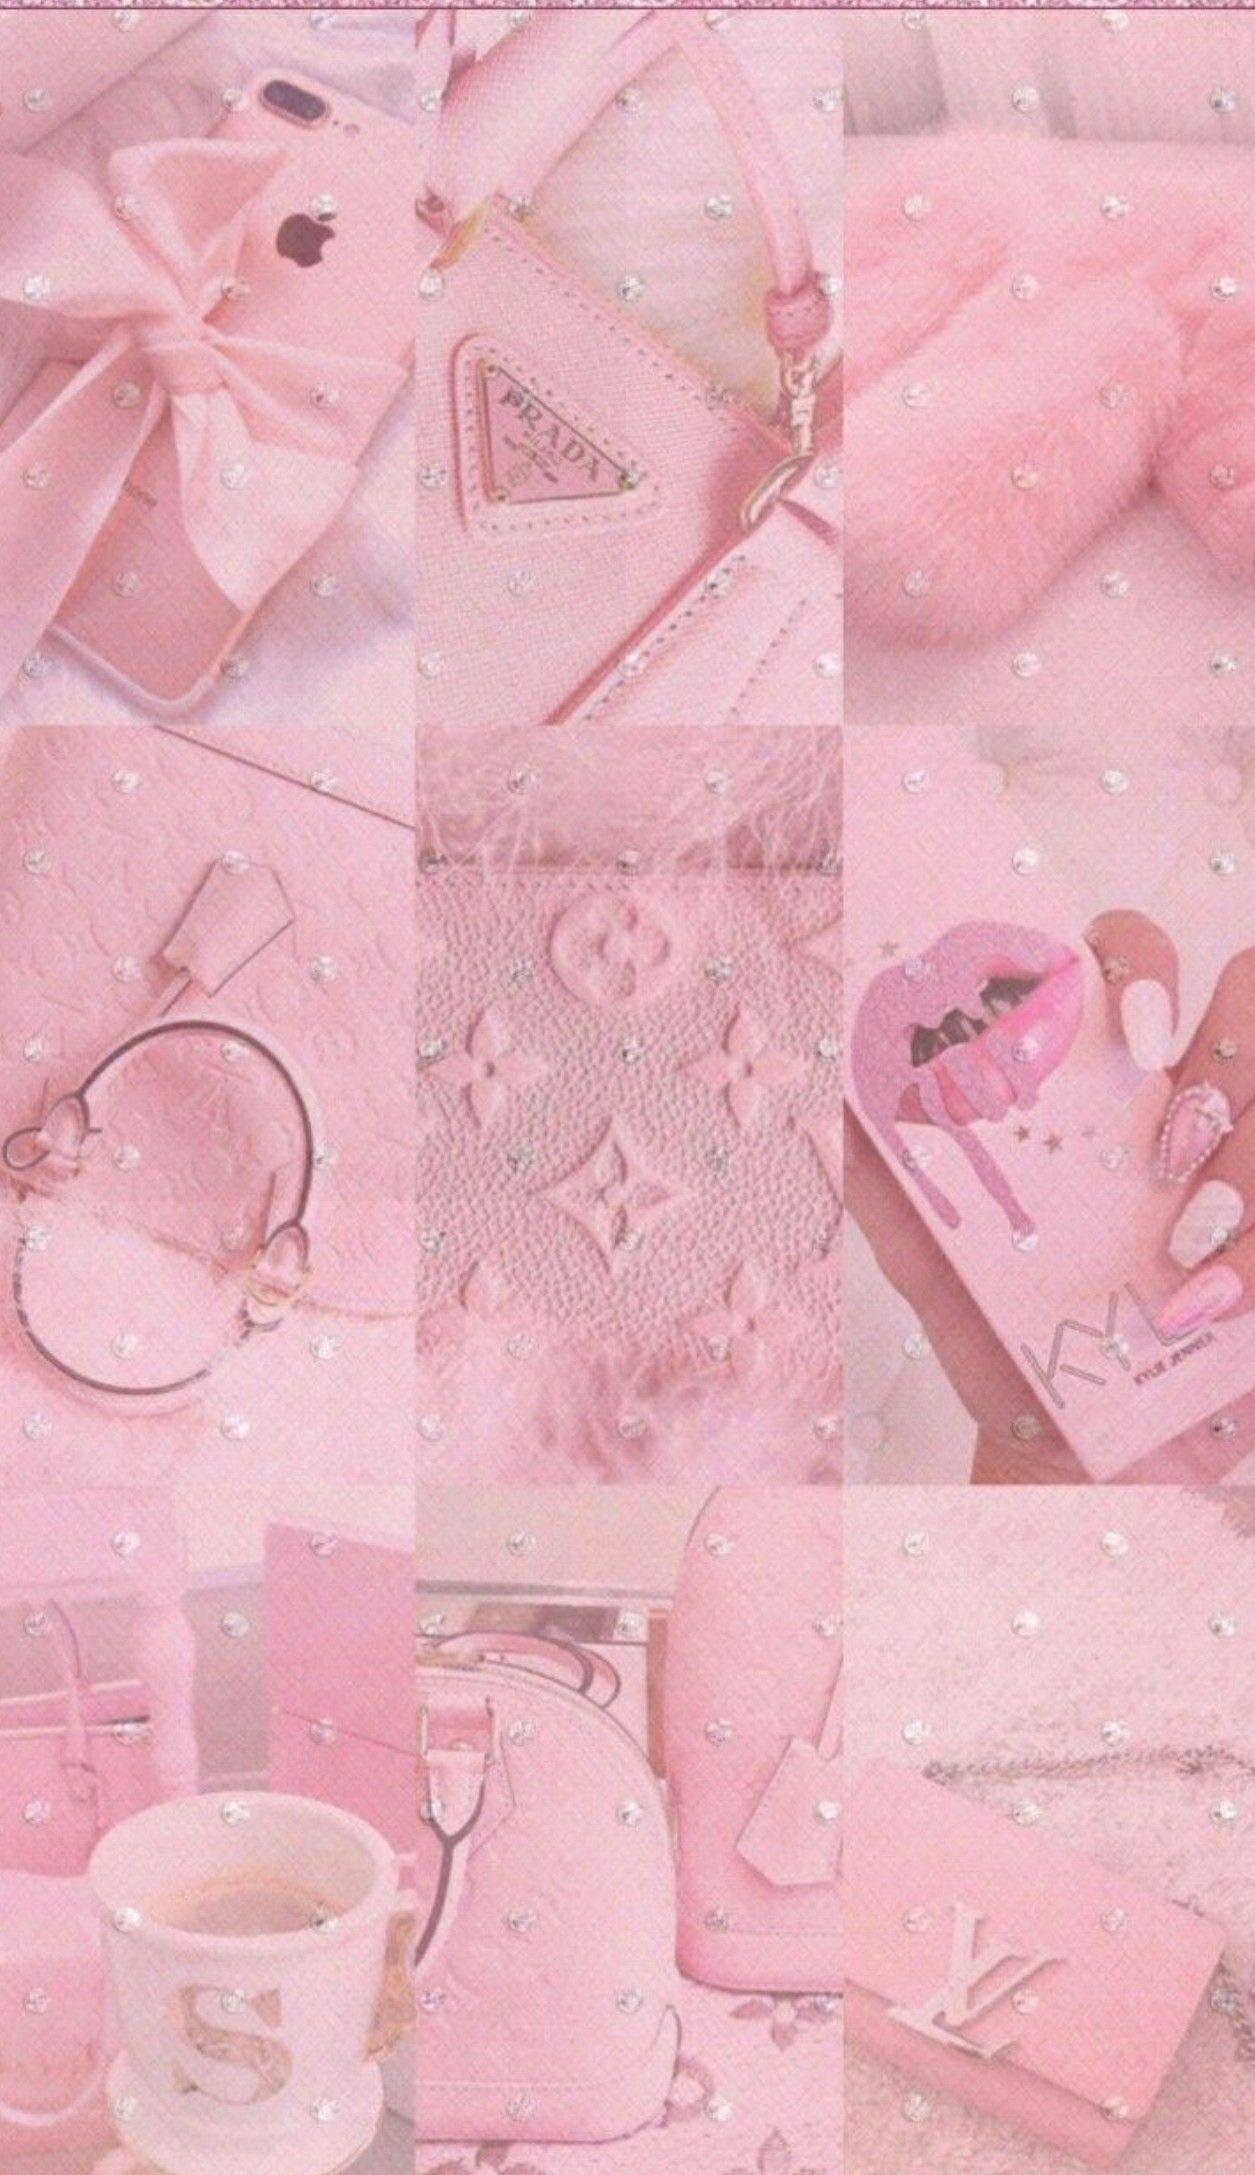 Girly Pink Aesthetic Wallpapers Wallpaper Cave See more ideas about aesthetic wallpapers, aesthetic iphone wallpaper, cute wallpapers. girly pink aesthetic wallpapers